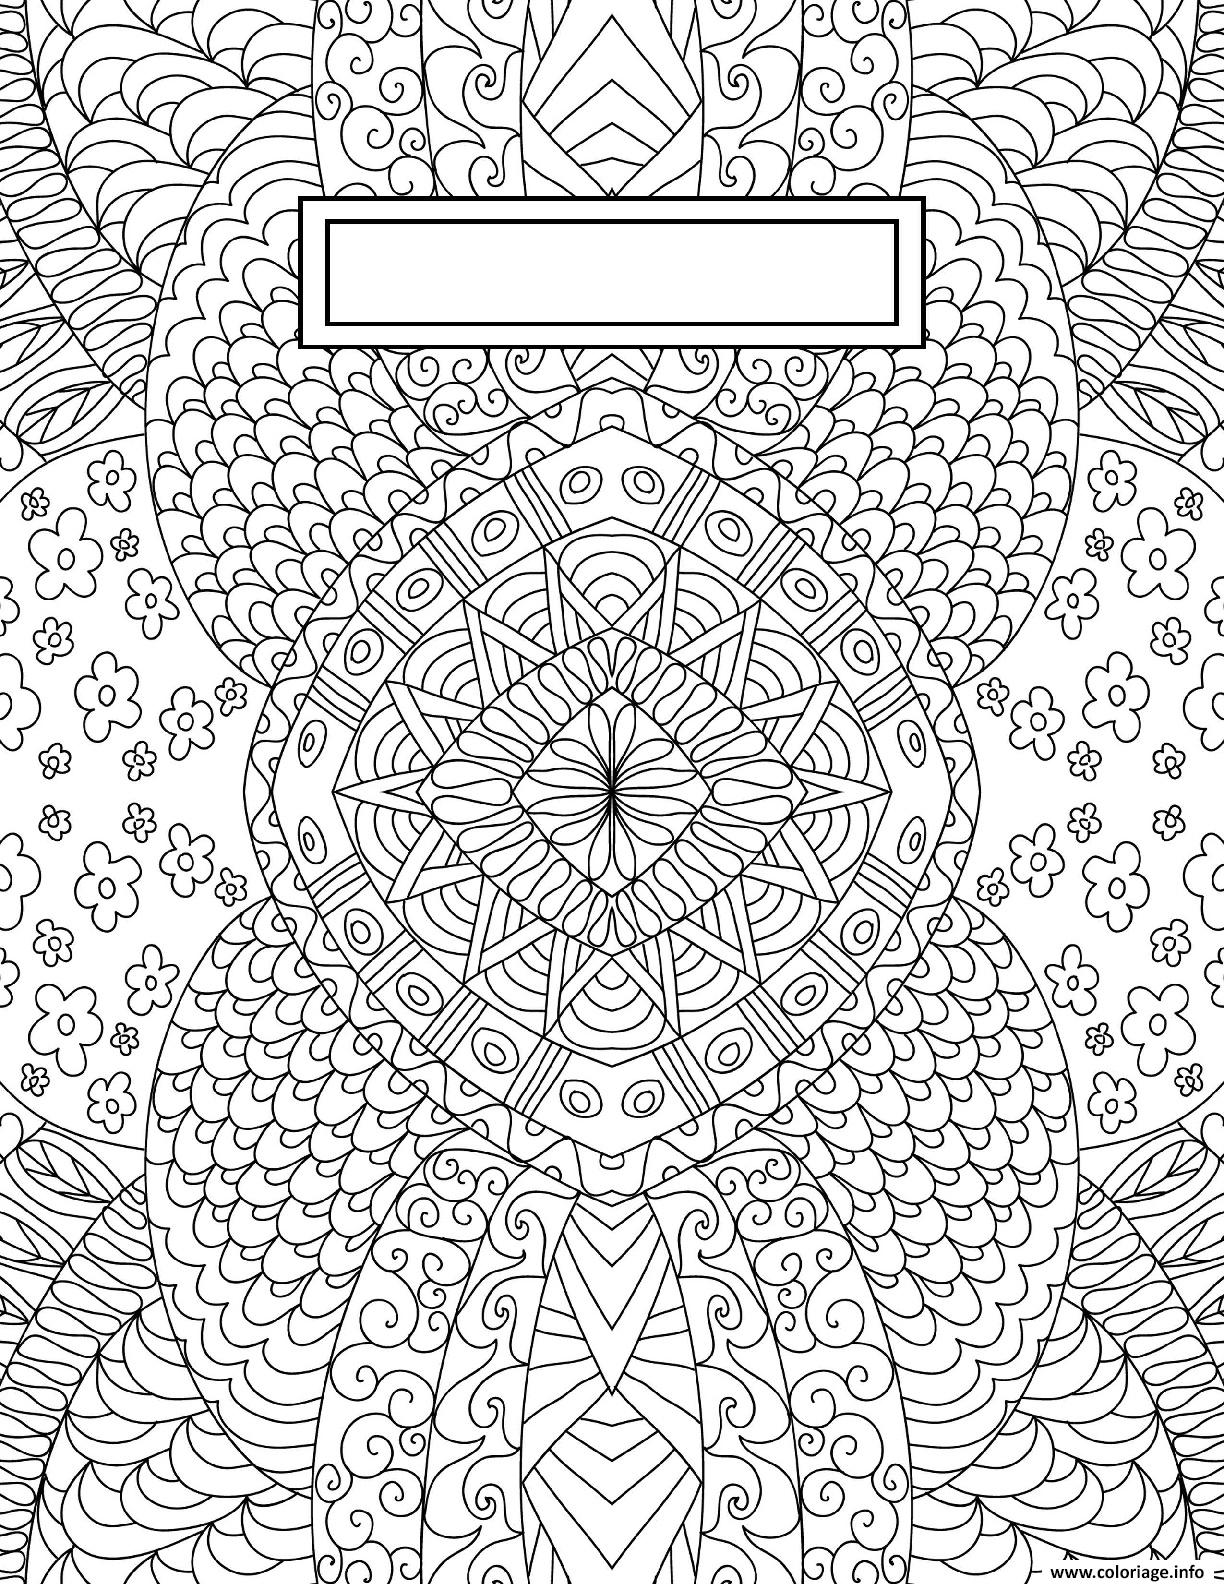 Coloriage Binder Cover Adult Relaxing Dessin à Imprimer